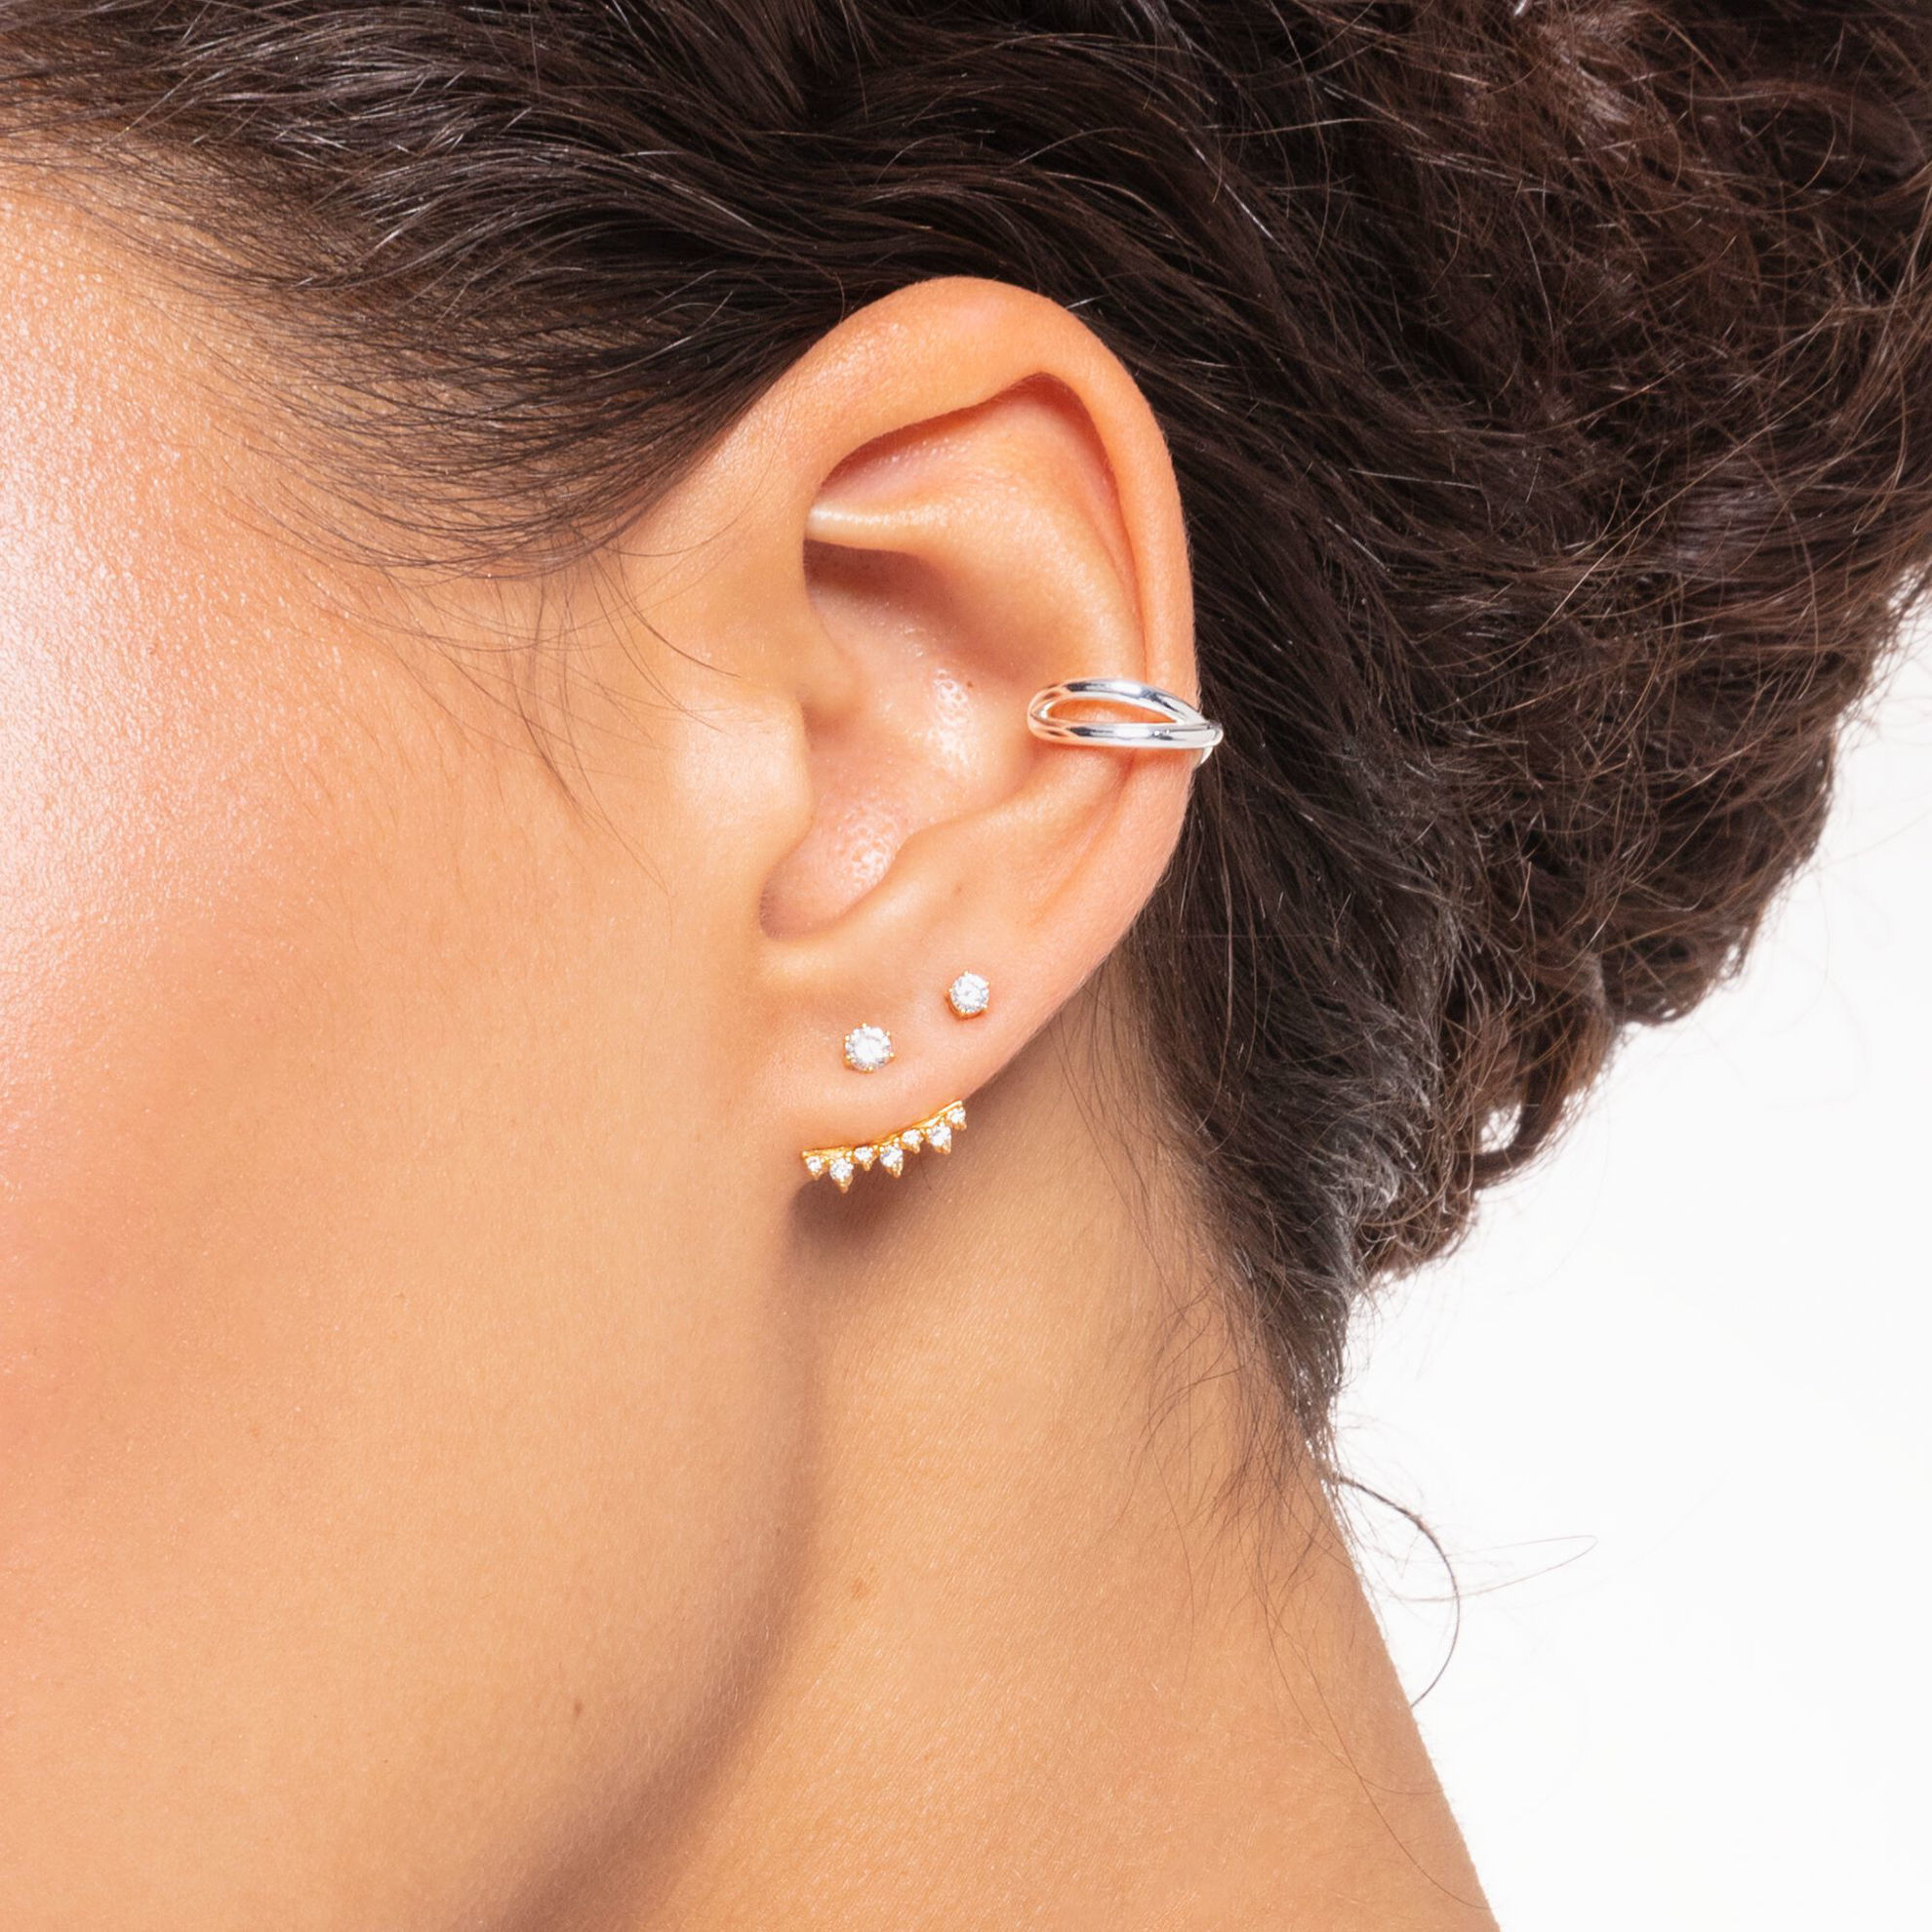 Picture of Ear Cuff in Silver